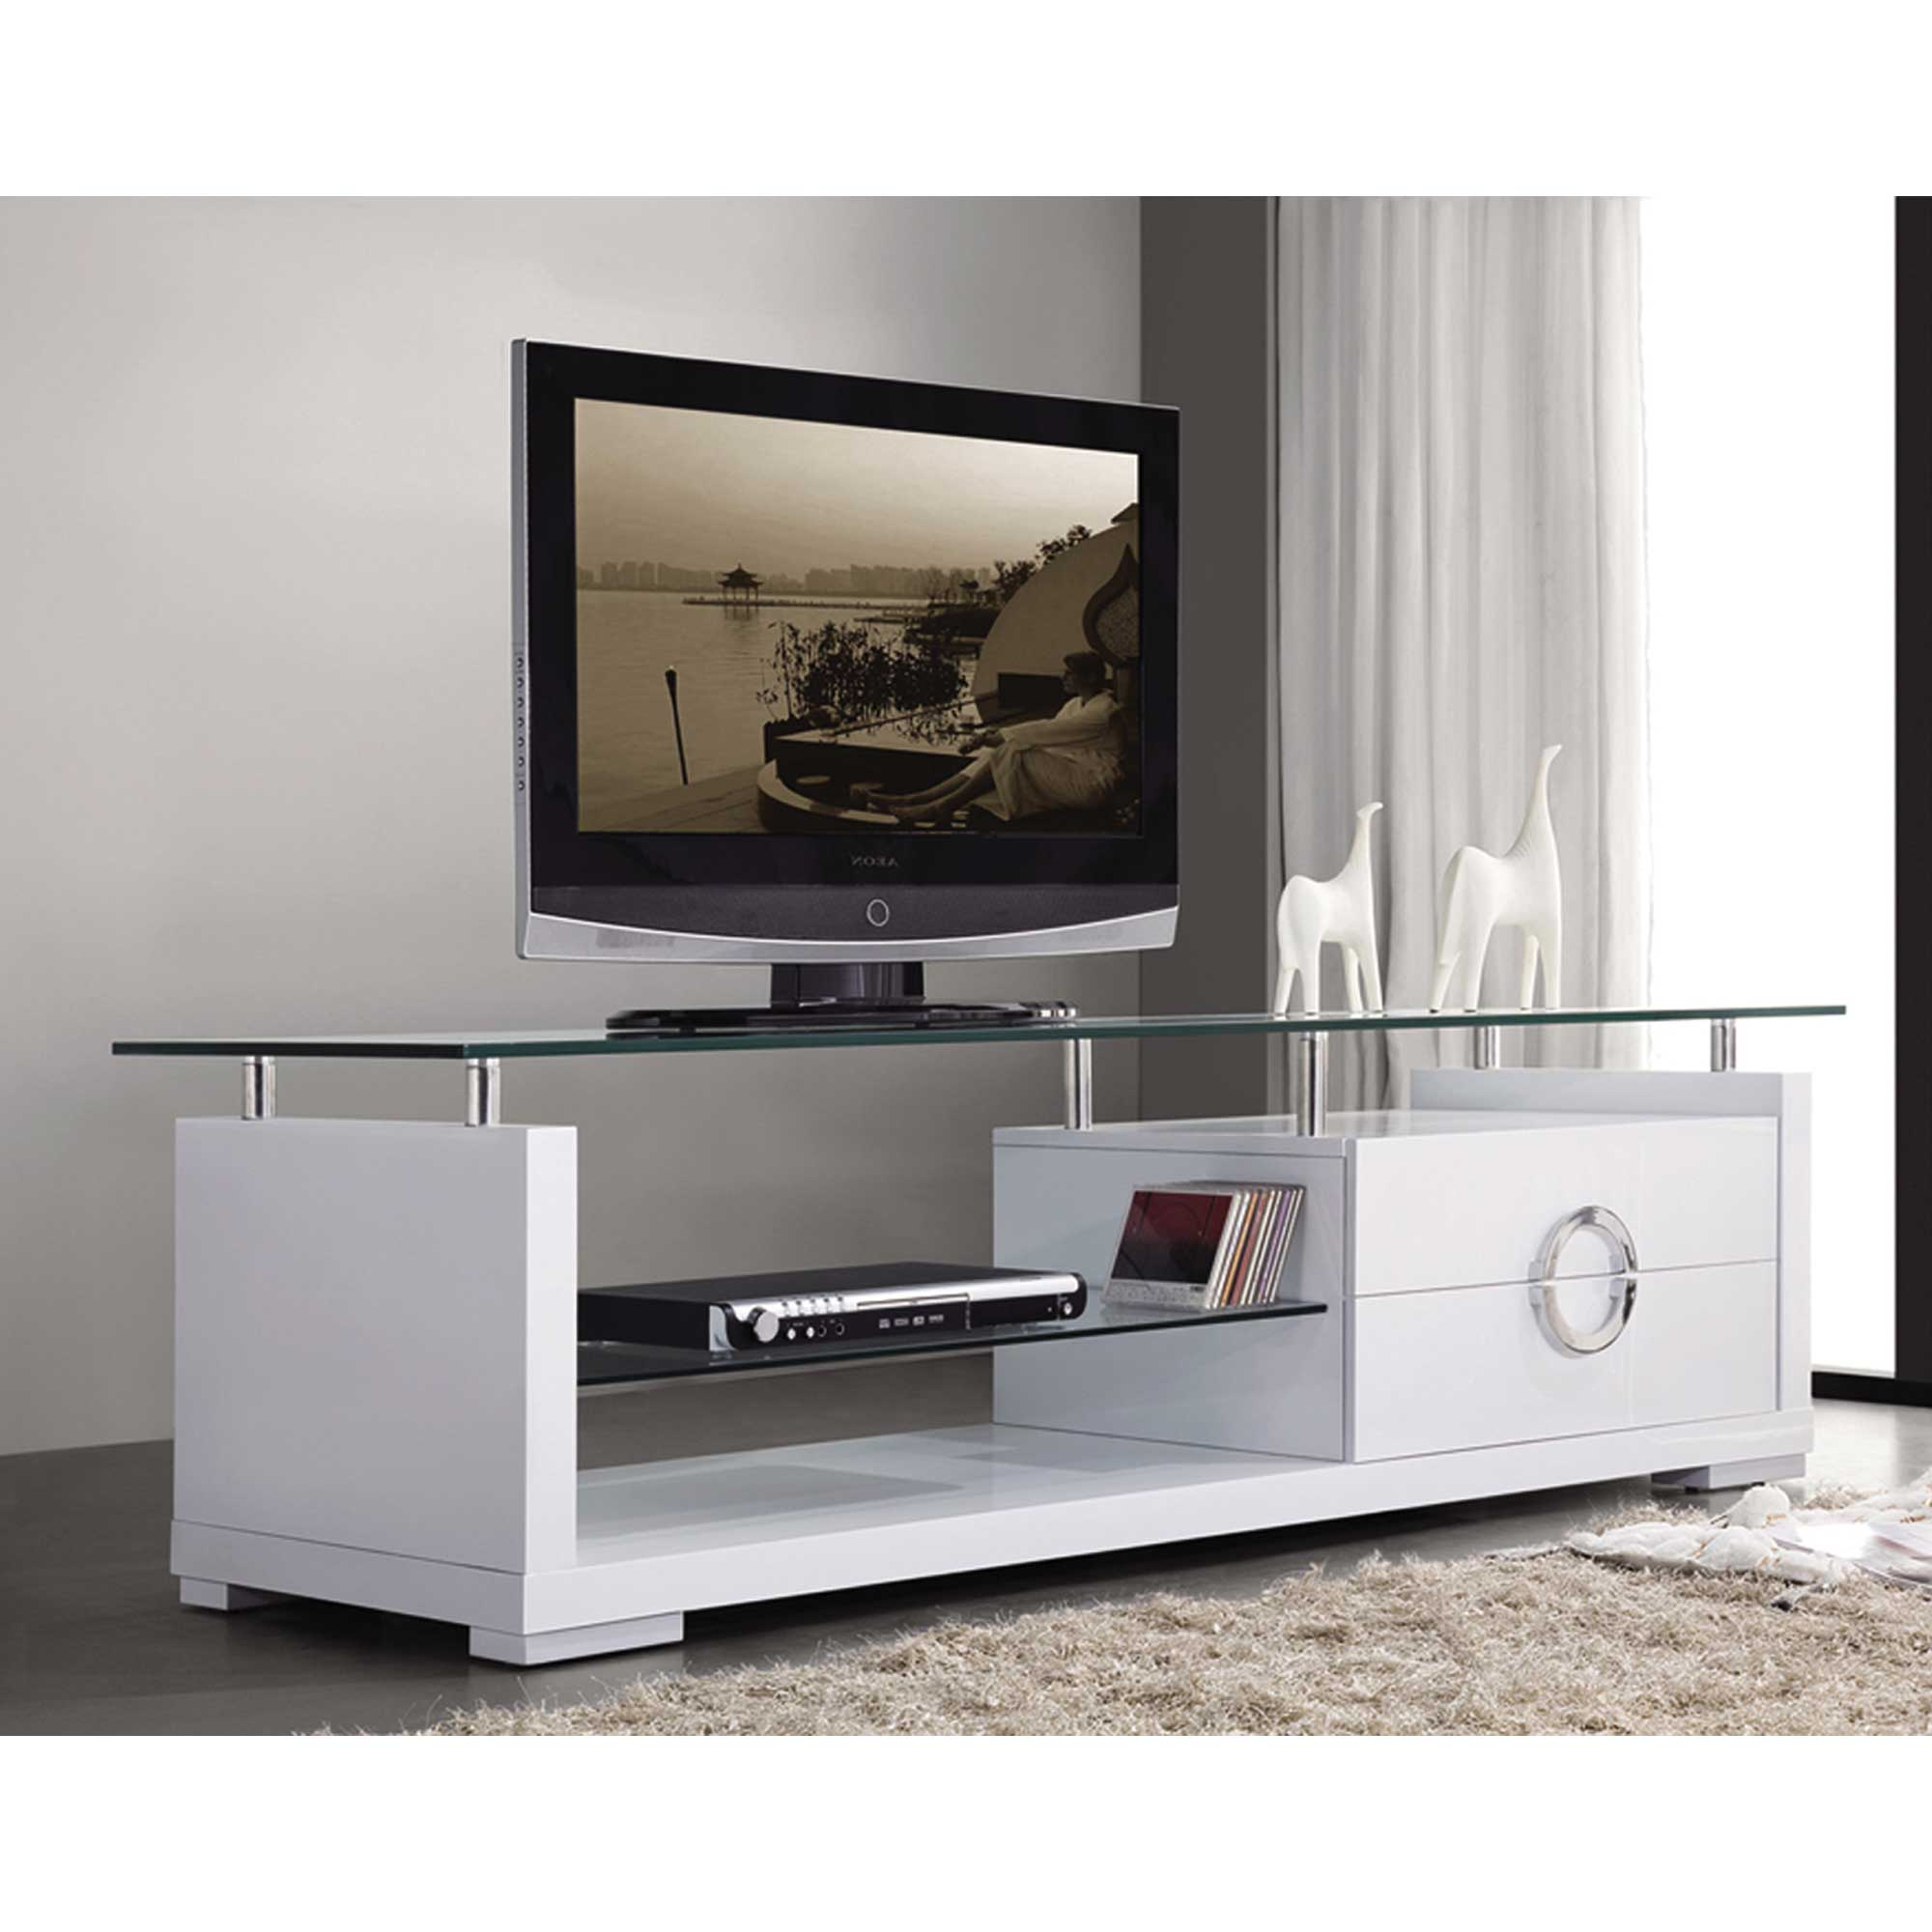 Modern White Tv Stands With Favorite Modern White Tv Stand – Home Deco (View 11 of 20)